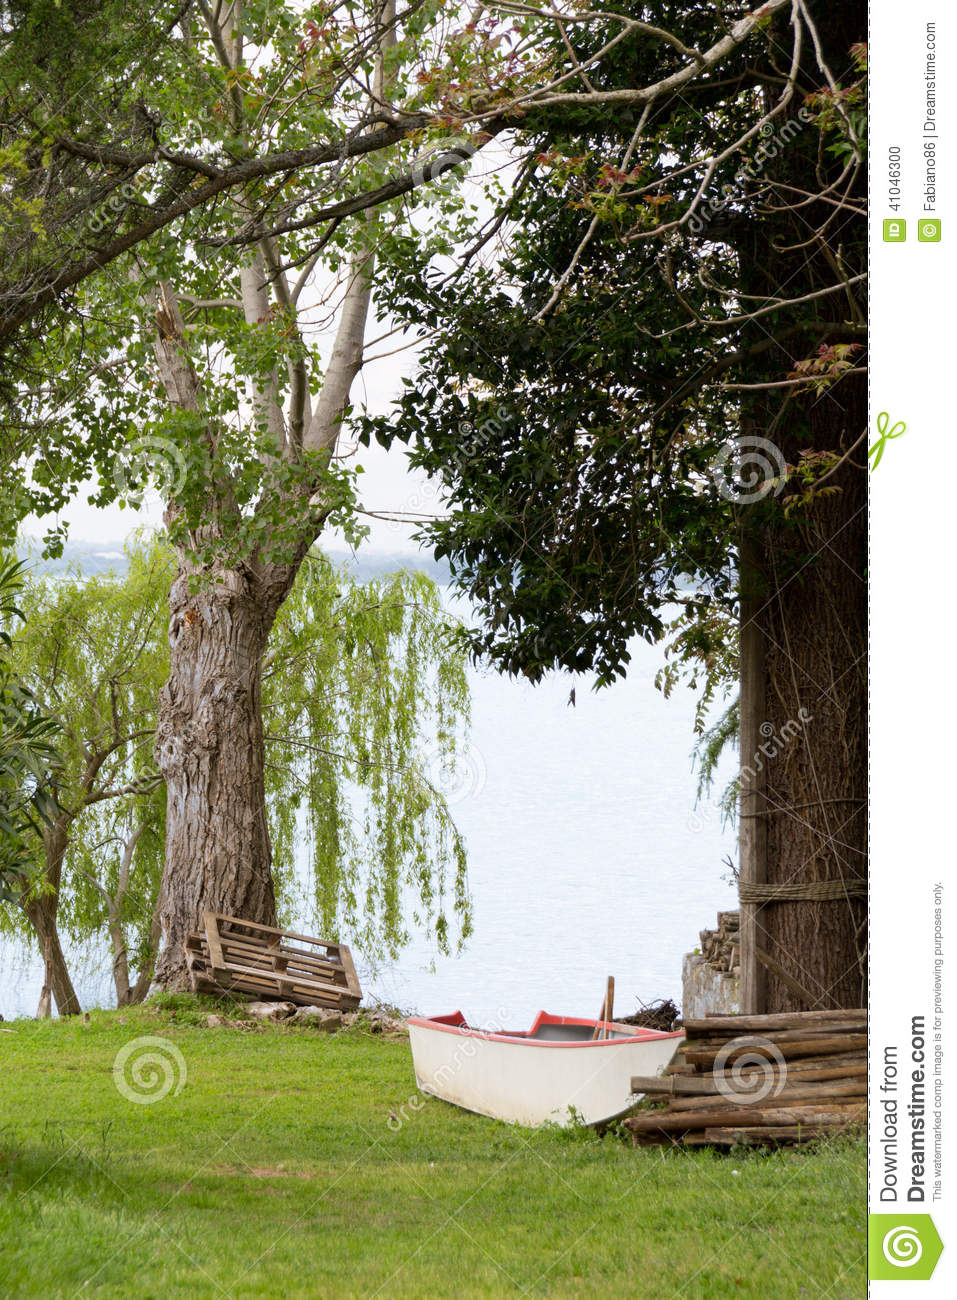 country backyard images reverse search